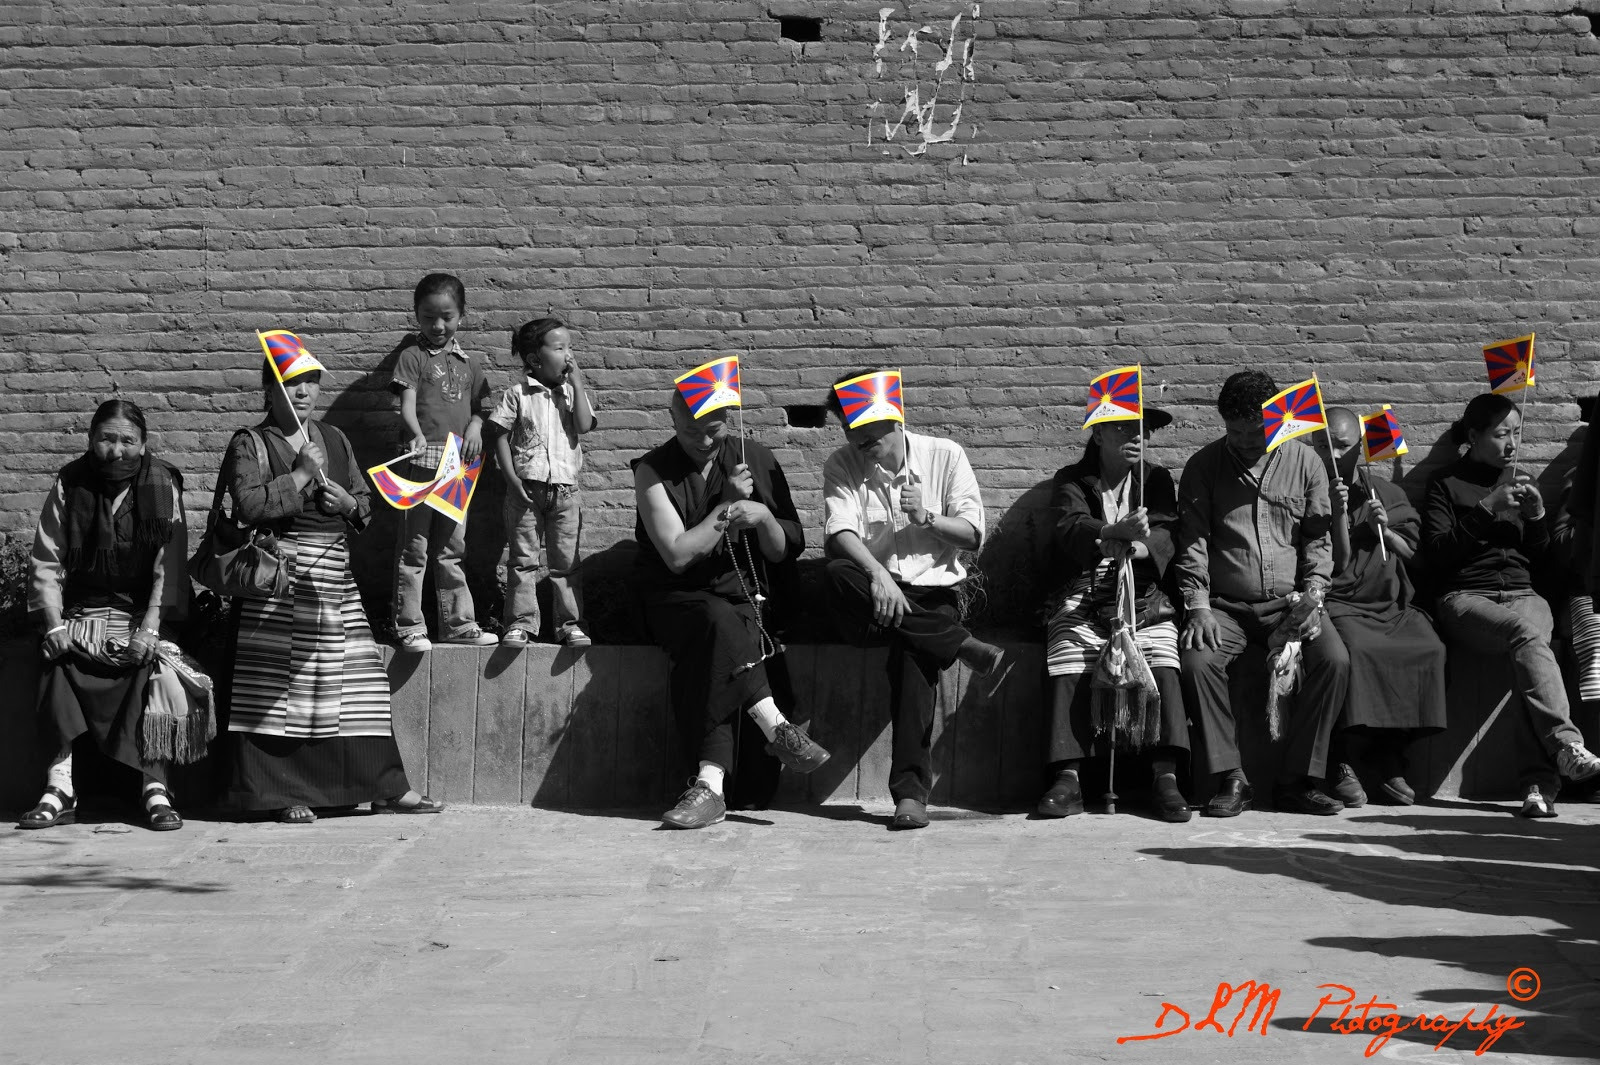 ... Bringing back the year 1959...as in Tibetan Uprising day ..10th March